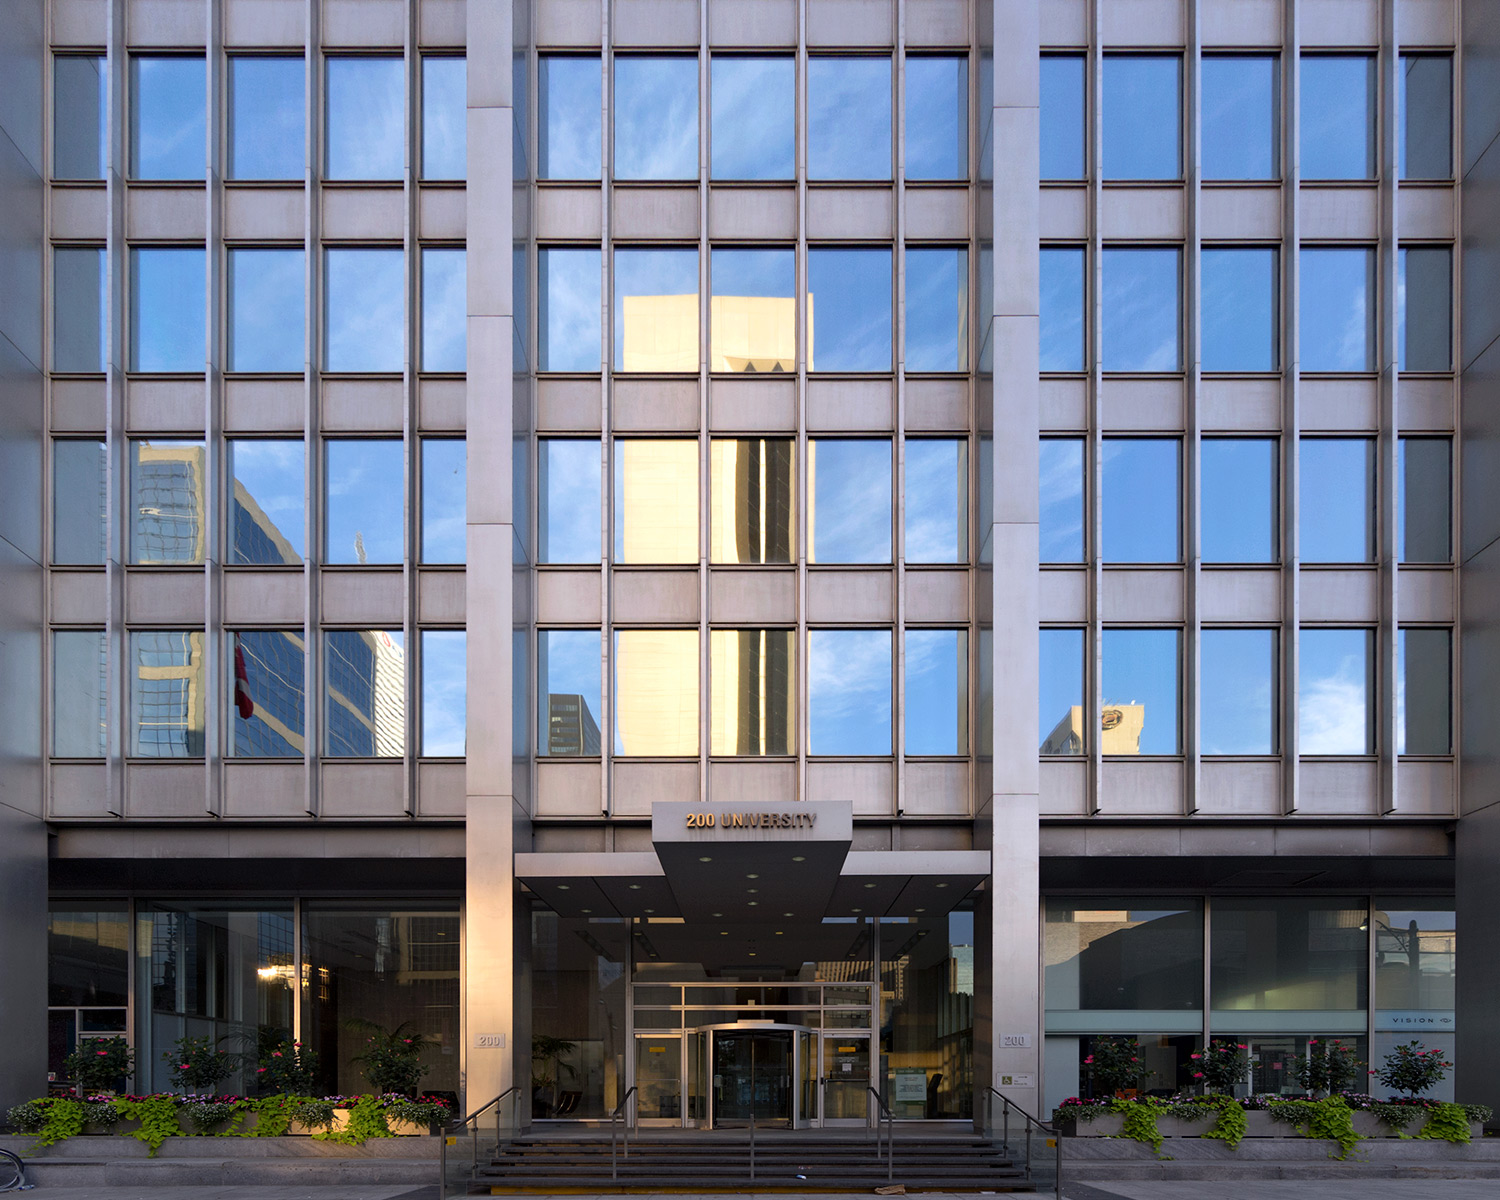 20151114. The anodized aluminum and mirrored modernism of Toront